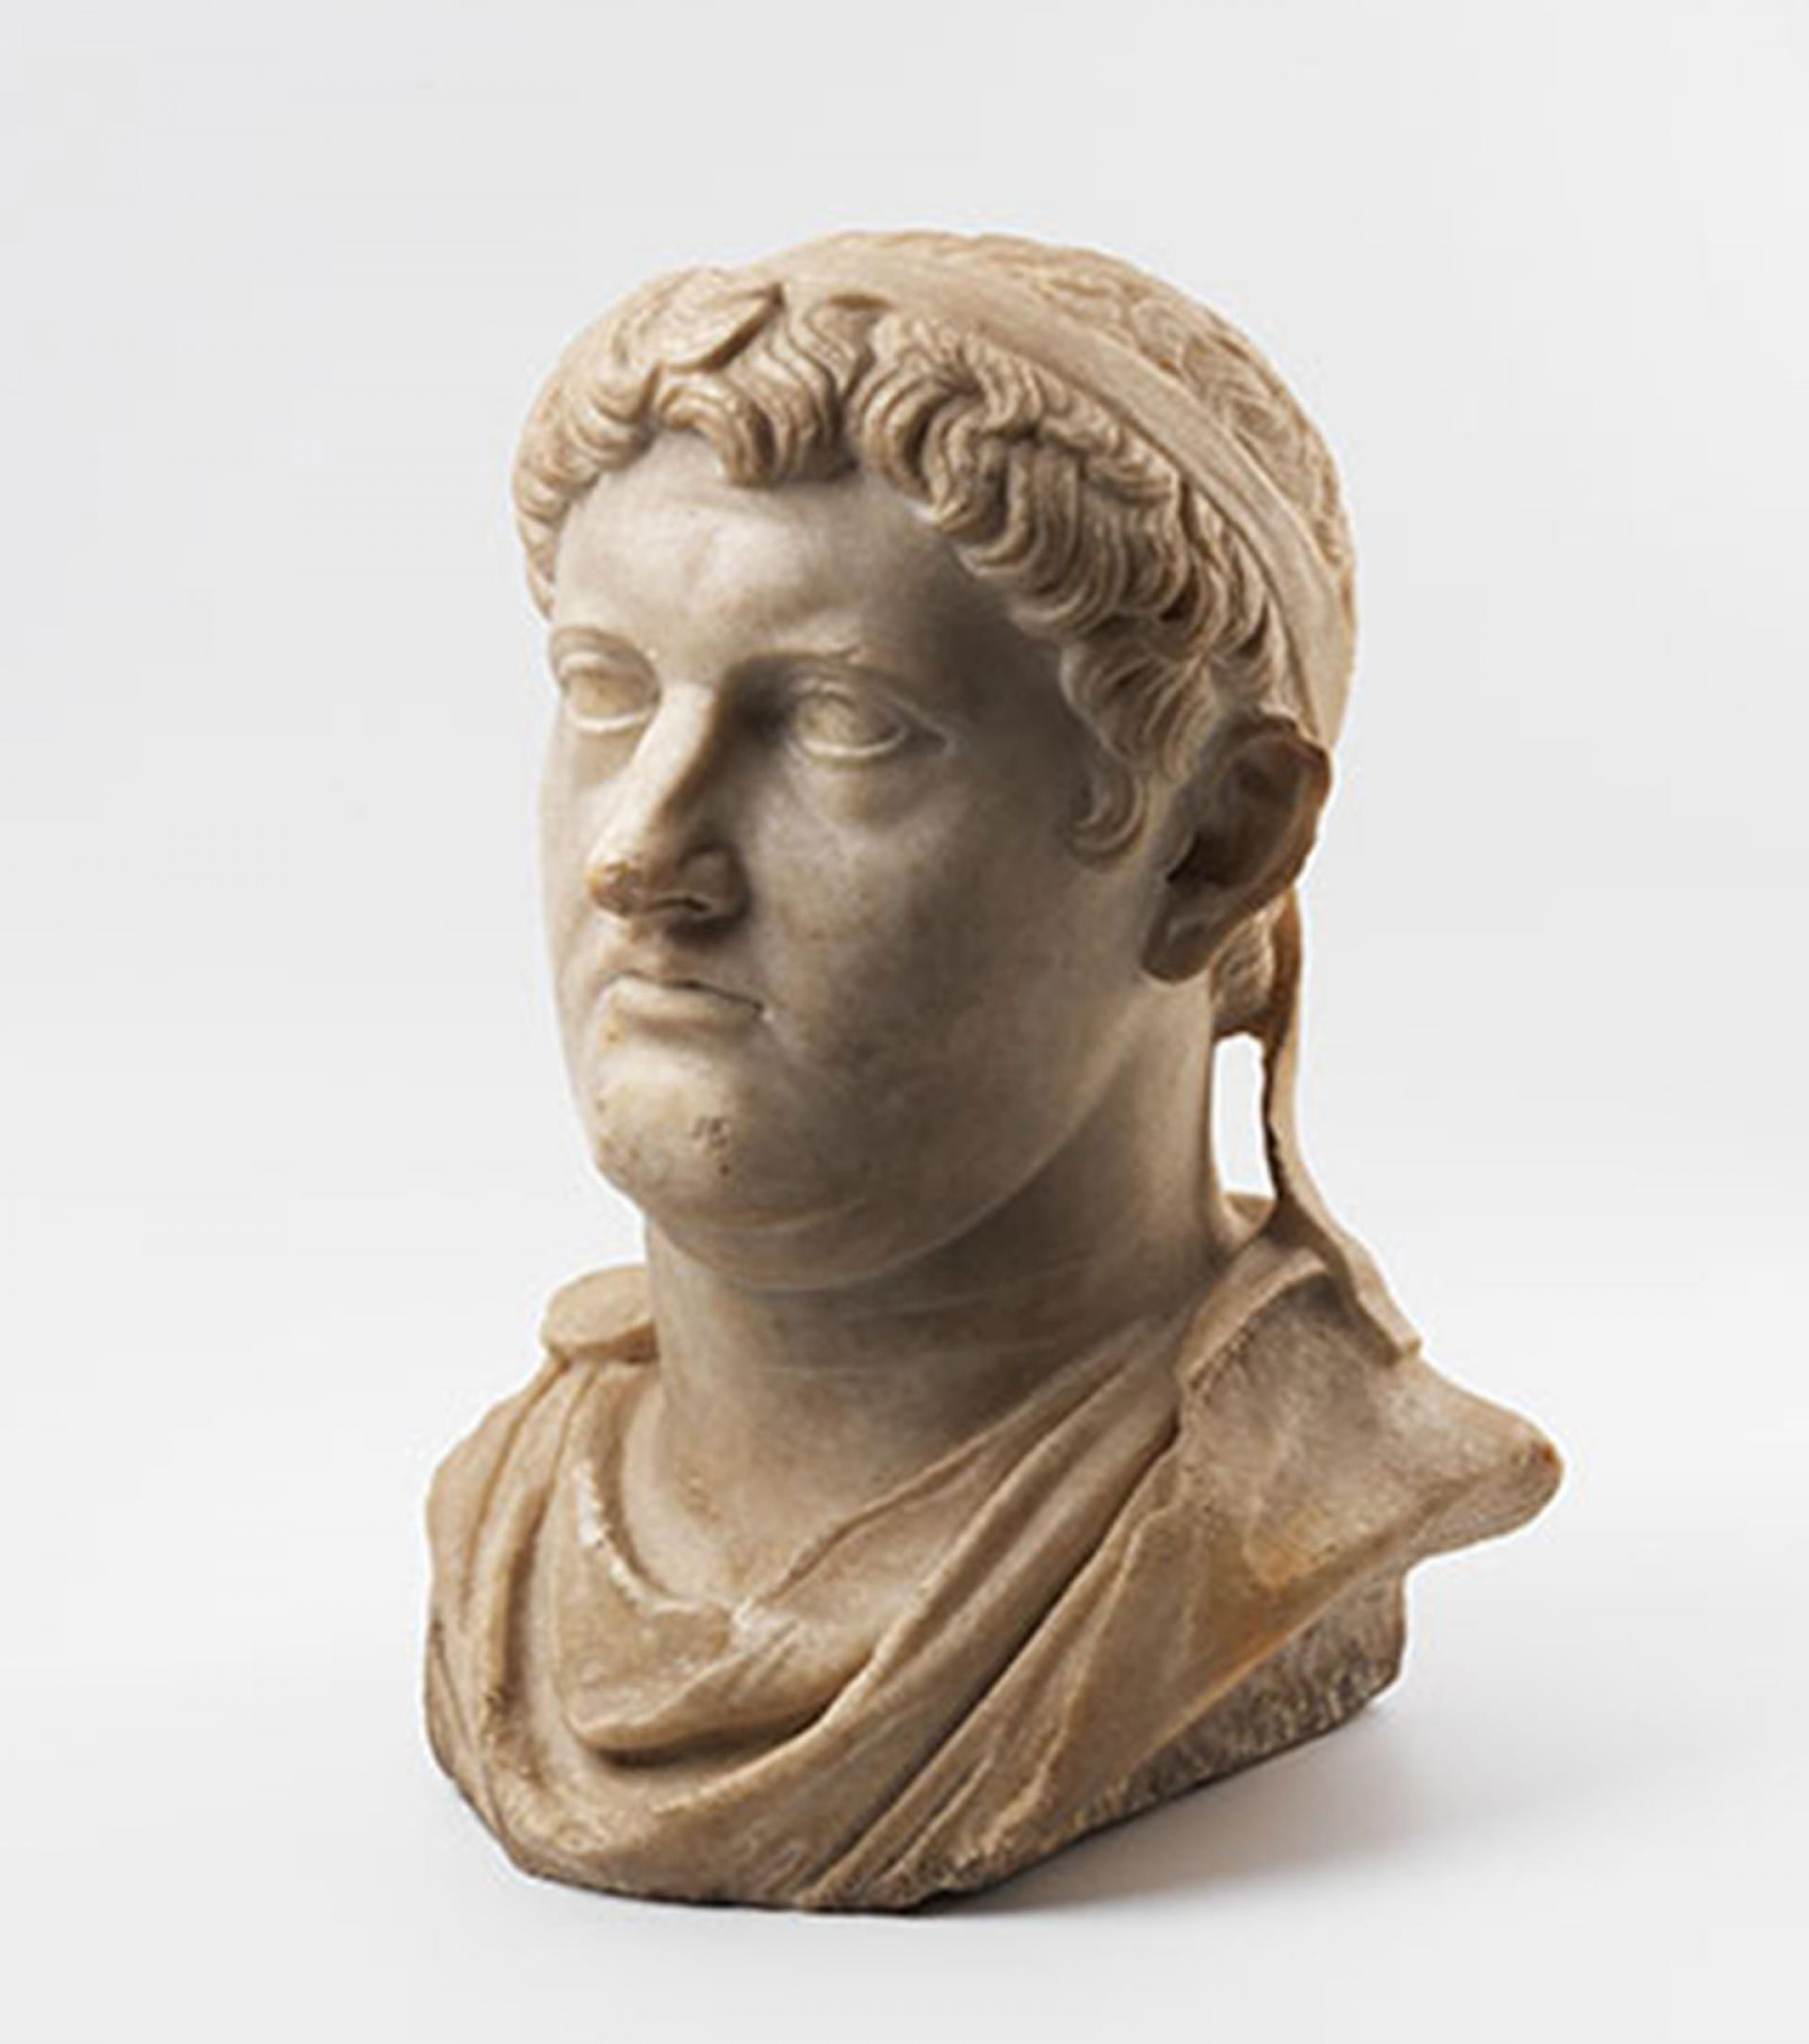 SHM 6851 - Bust of Philetairos MarbleRoman Imperial Period1st century AD